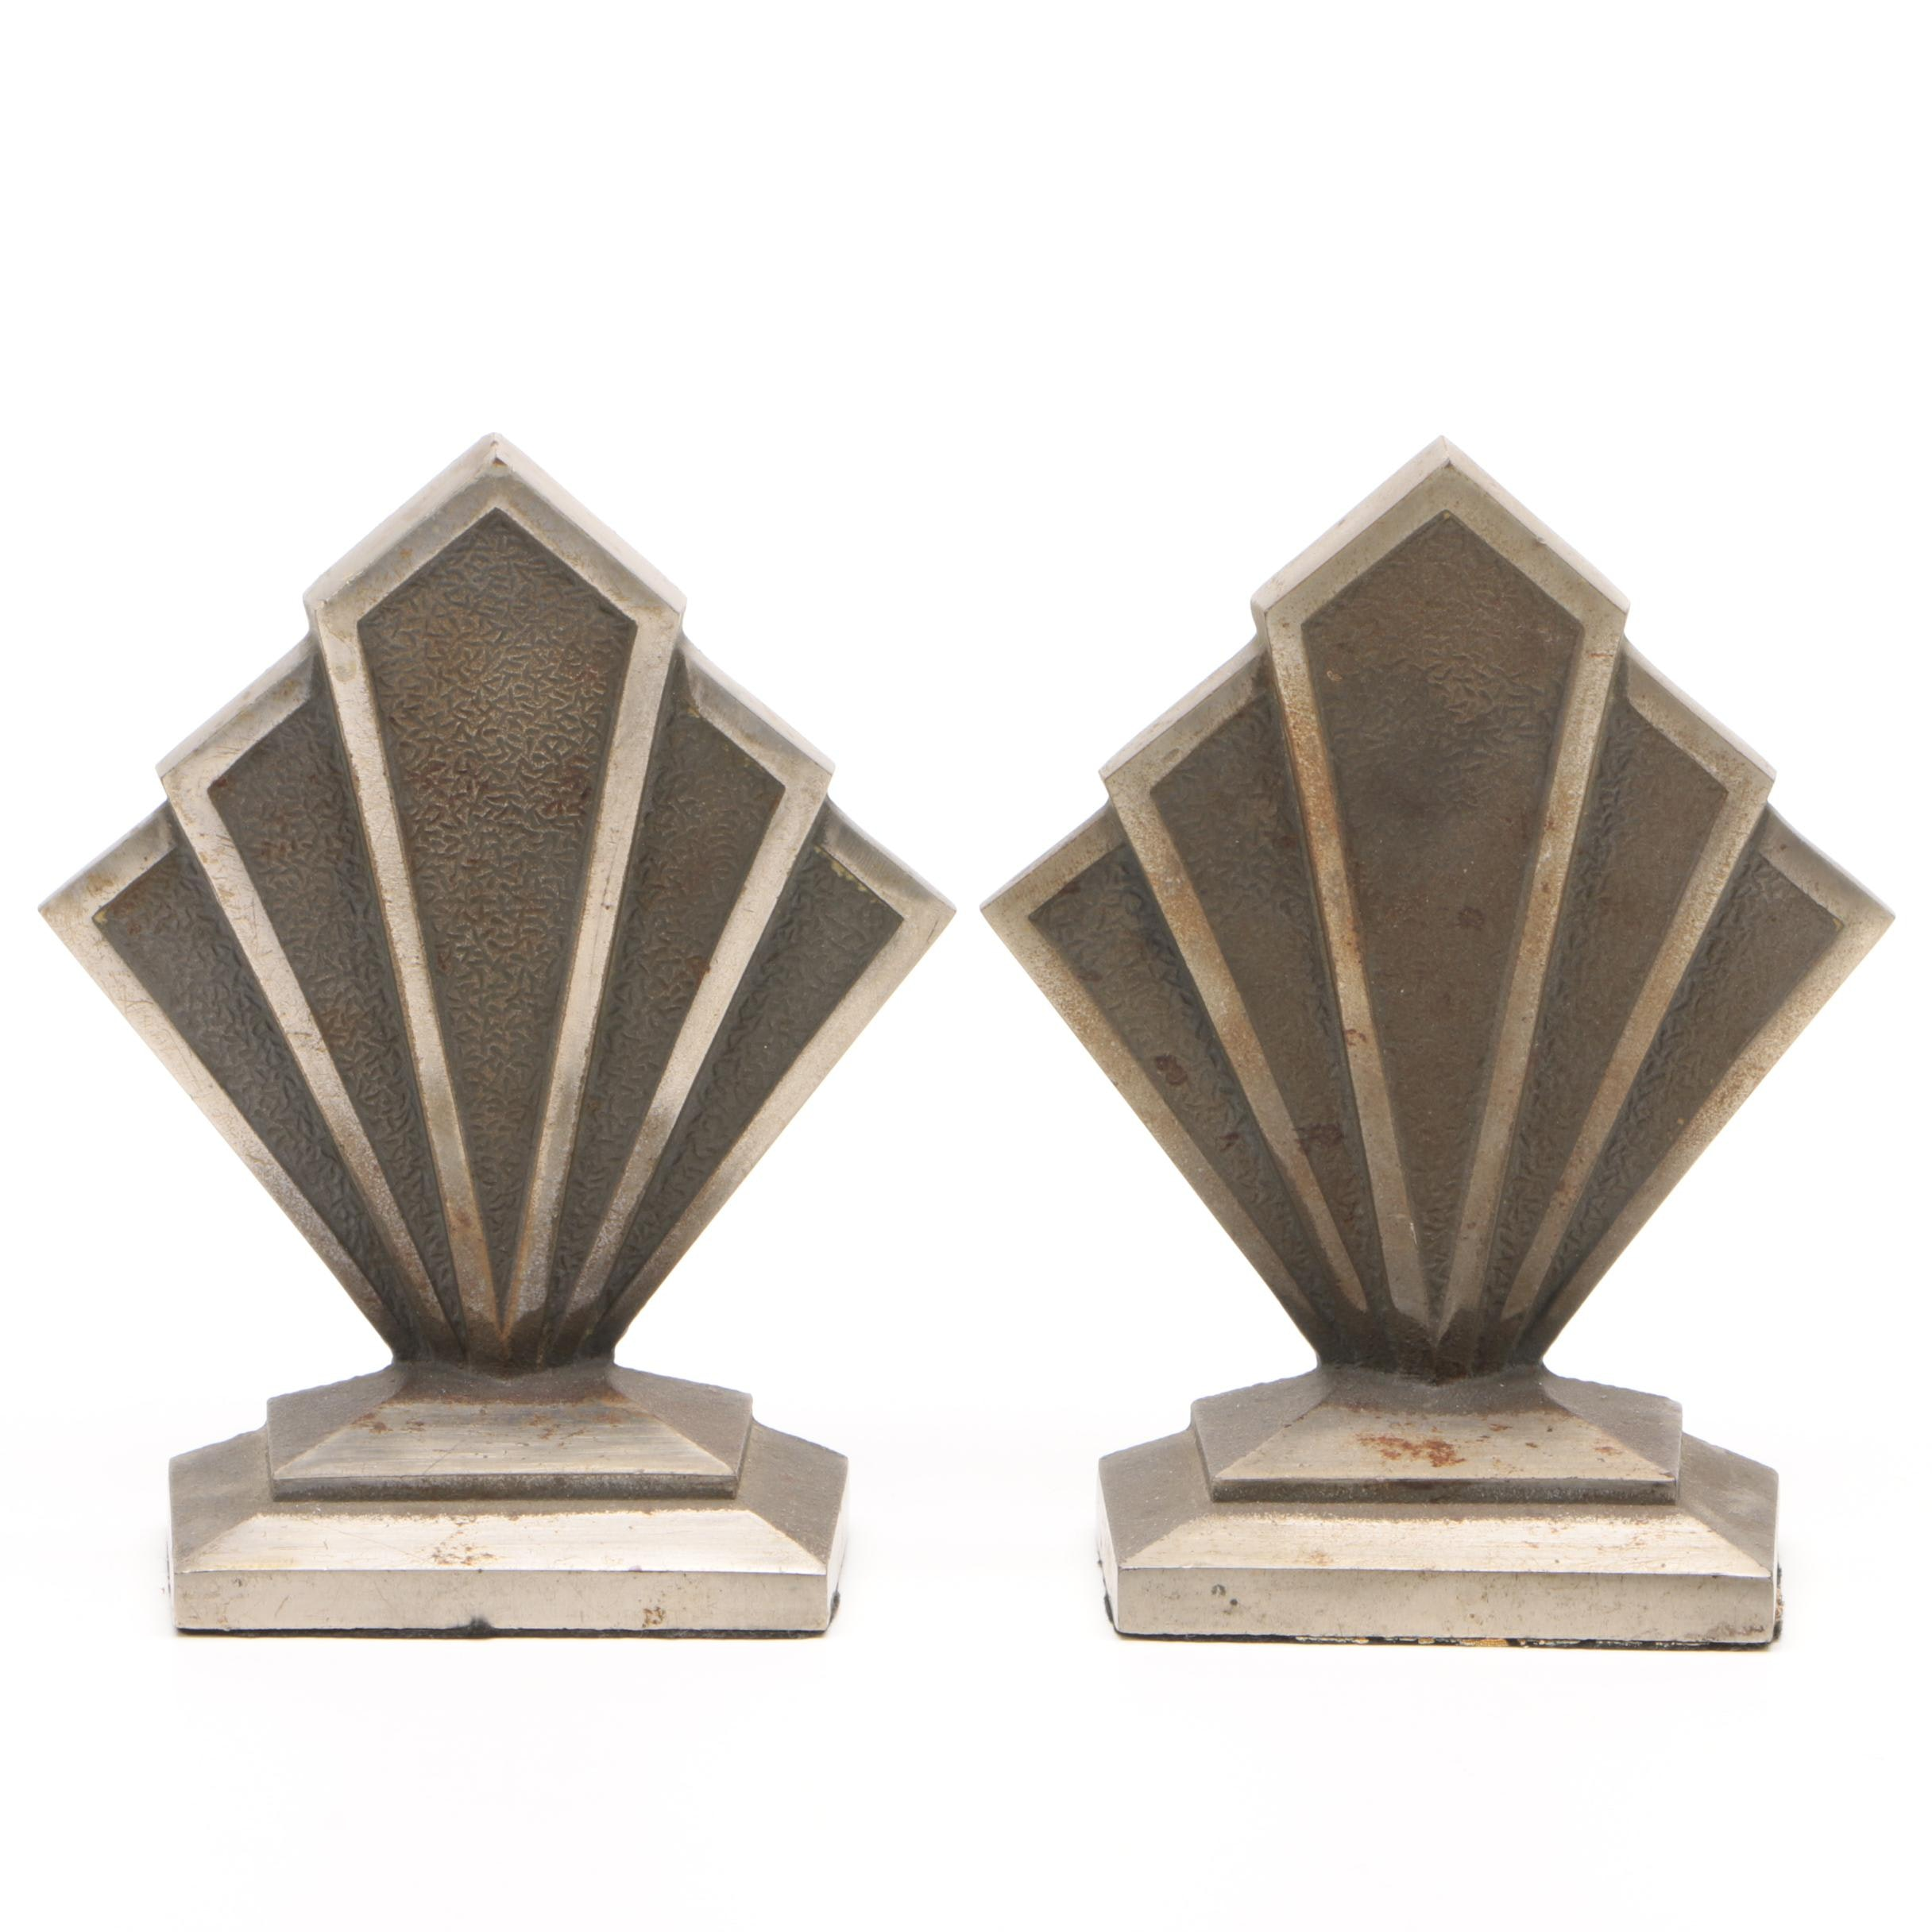 Hubley Cast Iron Art Deco Bookends, Early 20th Century